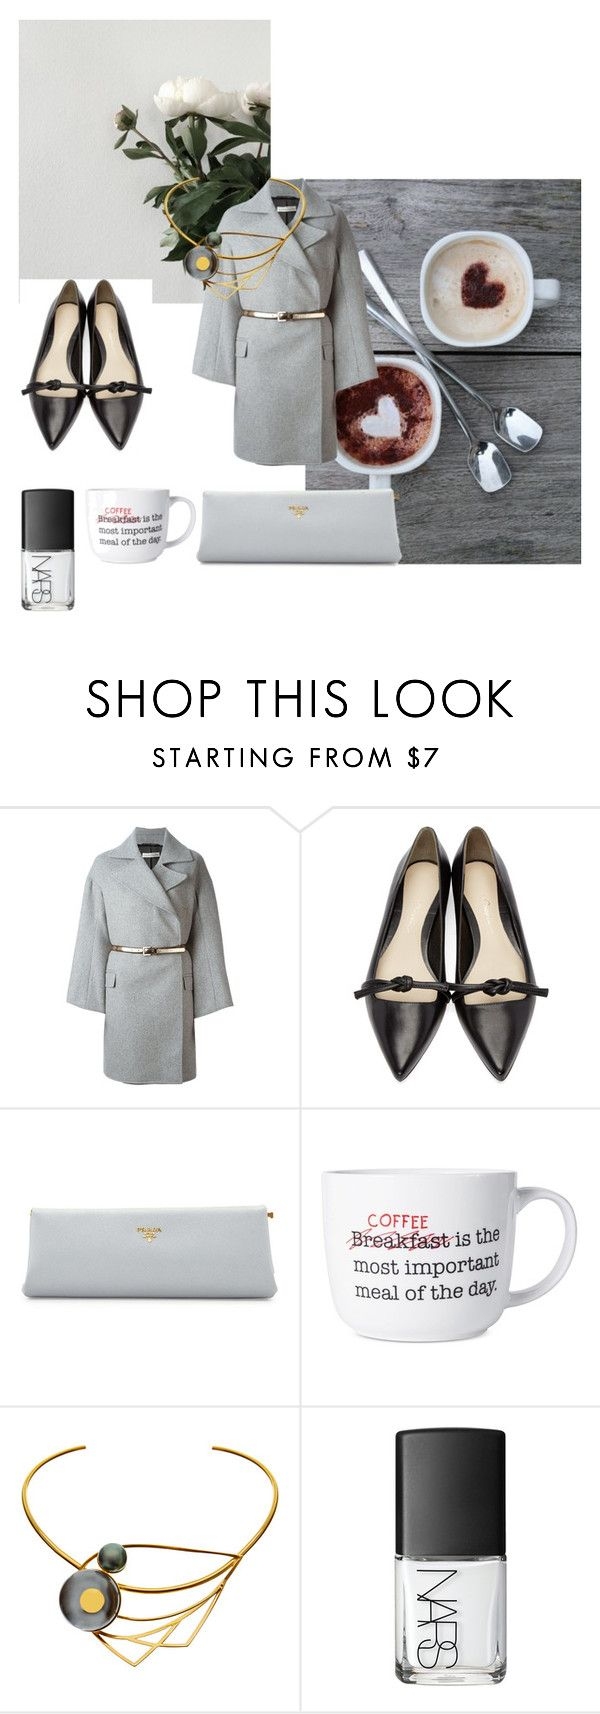 """""""roxaraione loves grey composition"""" by roxariaone ❤ liked on Polyvore featuring Golden Goose, 3.1 Phillip Lim, Prada, Pfaltzgraff, LeiVanKash, NARS Cosmetics and grey"""